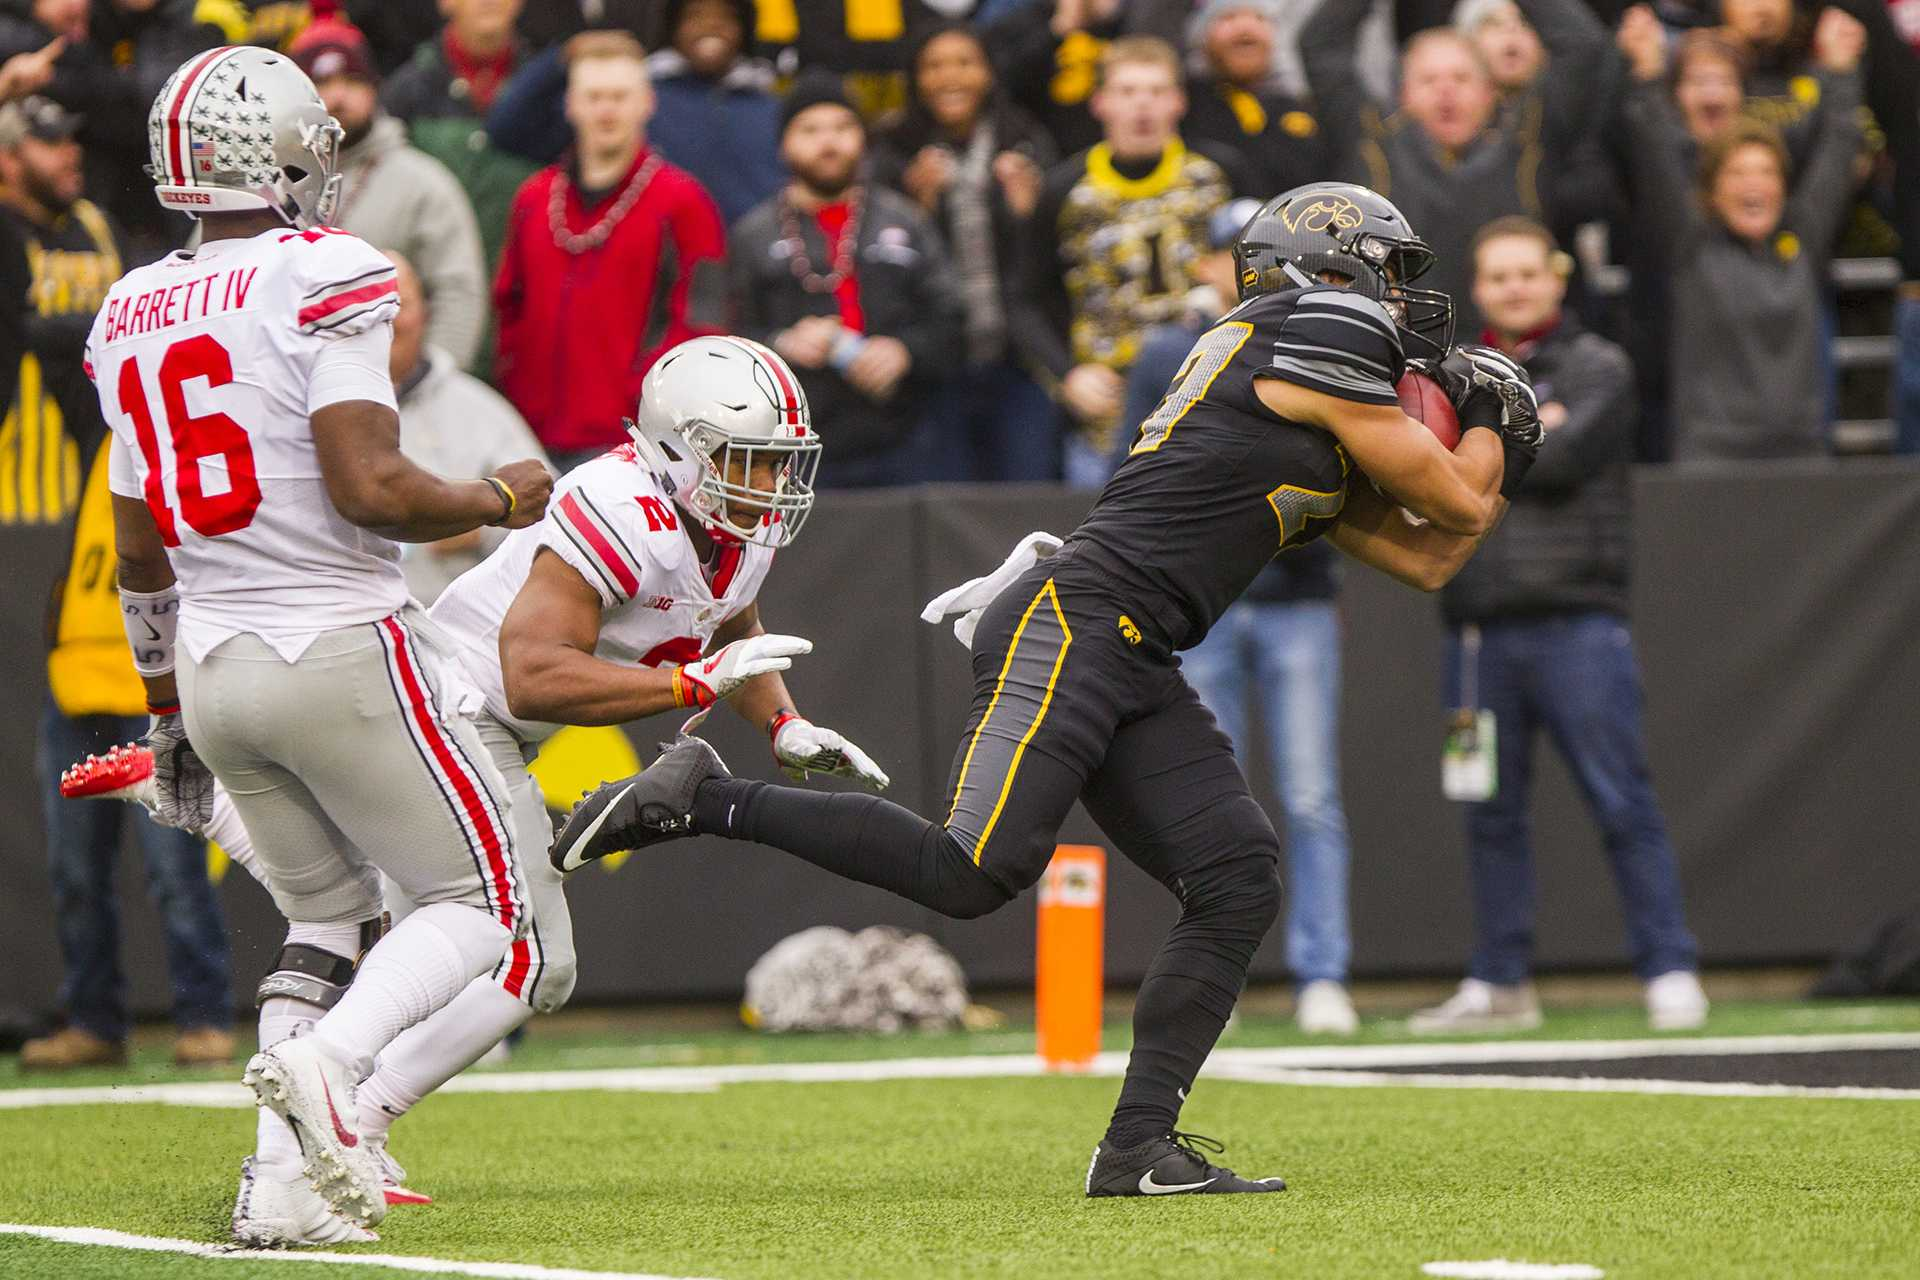 Iowa strong safety Amani Hooker dives into the end zone after intercepting a pass on Ohio State's first play from scrimmage during Iowa's game against Ohio State at Kinnick Stadium on Saturday, Nov. 4, 2017. The Hawkeyes defeated the Buckeyes 55 to 24. (Nick Rohlman/The Daily Iowan)